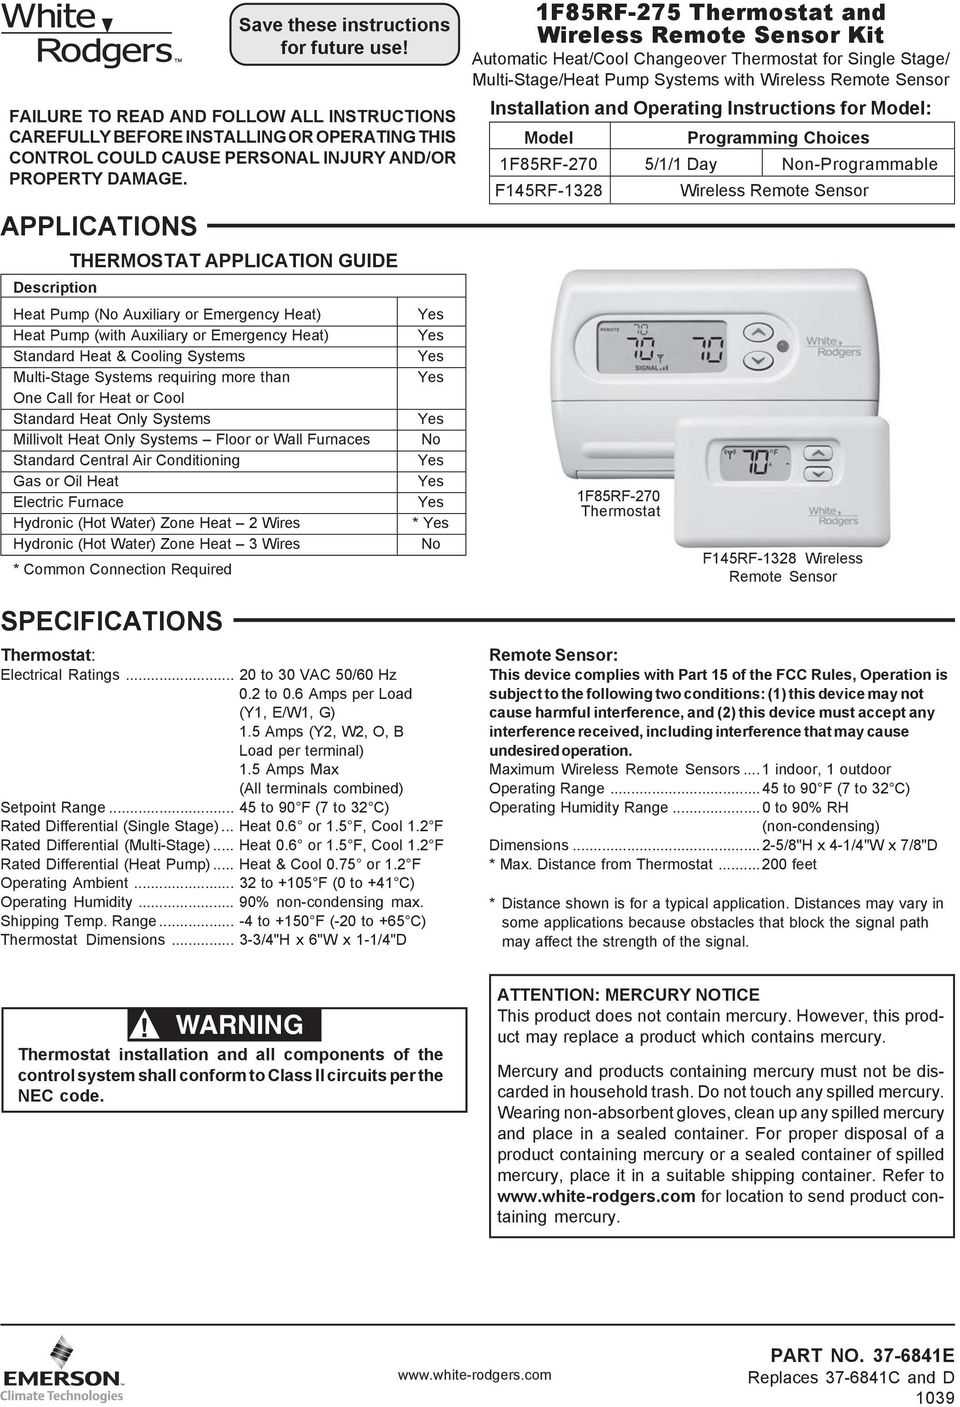 Quick Installation Guide Pdf How To Wire An Air Conditioner For Control 5 Wires Requiring More Than One Call Heat Or Cool Standard Only Systems Millivolt Caution